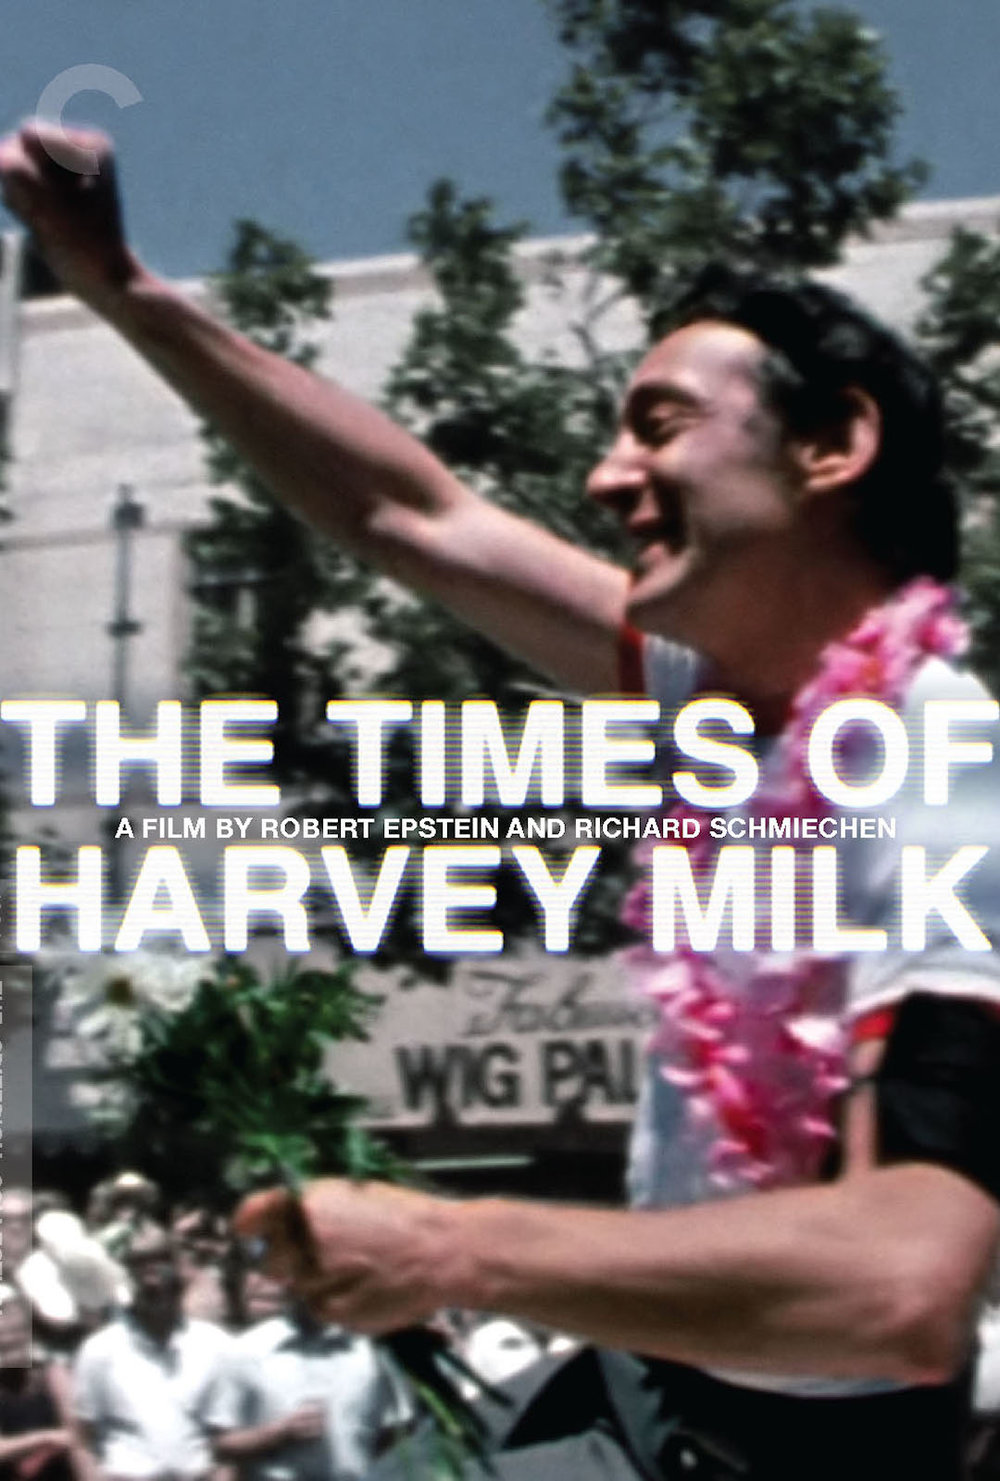 TheTimesOfHarveyMilk_CriterionDVD_1425.jpg